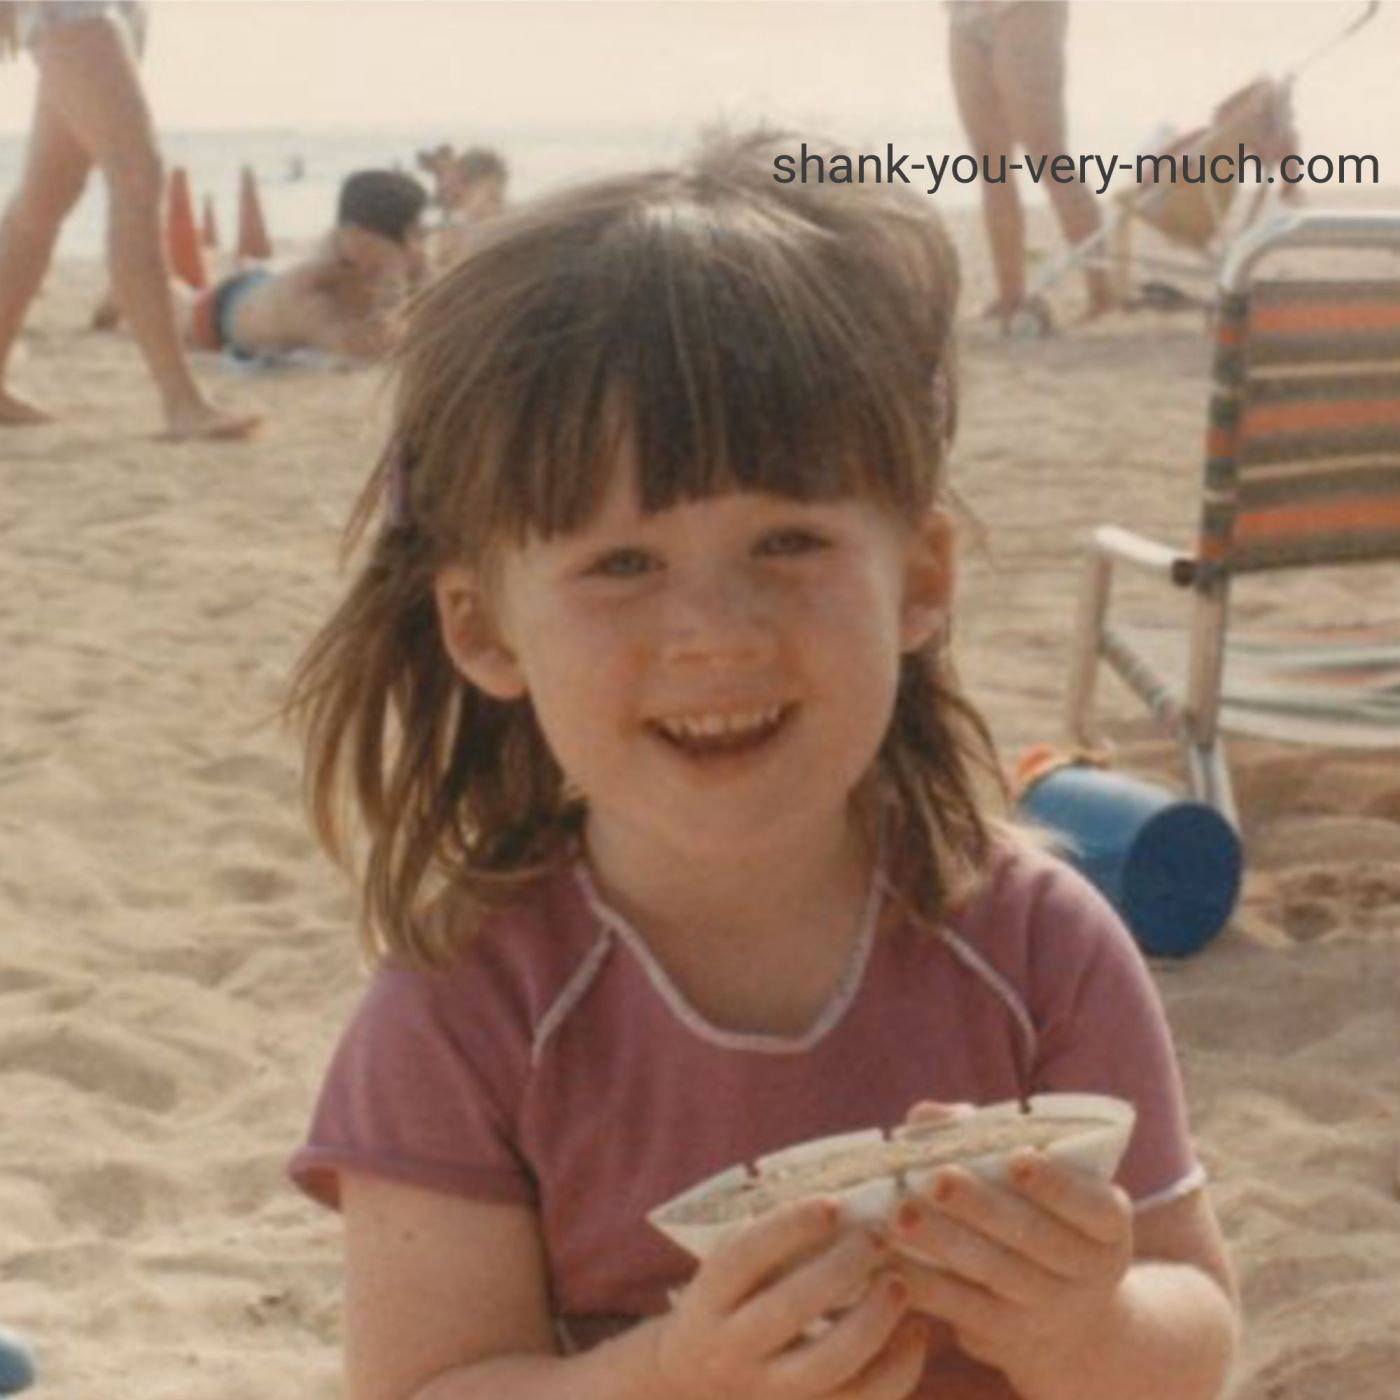 A photo of young Heather sitting on a sandy beach smiling.